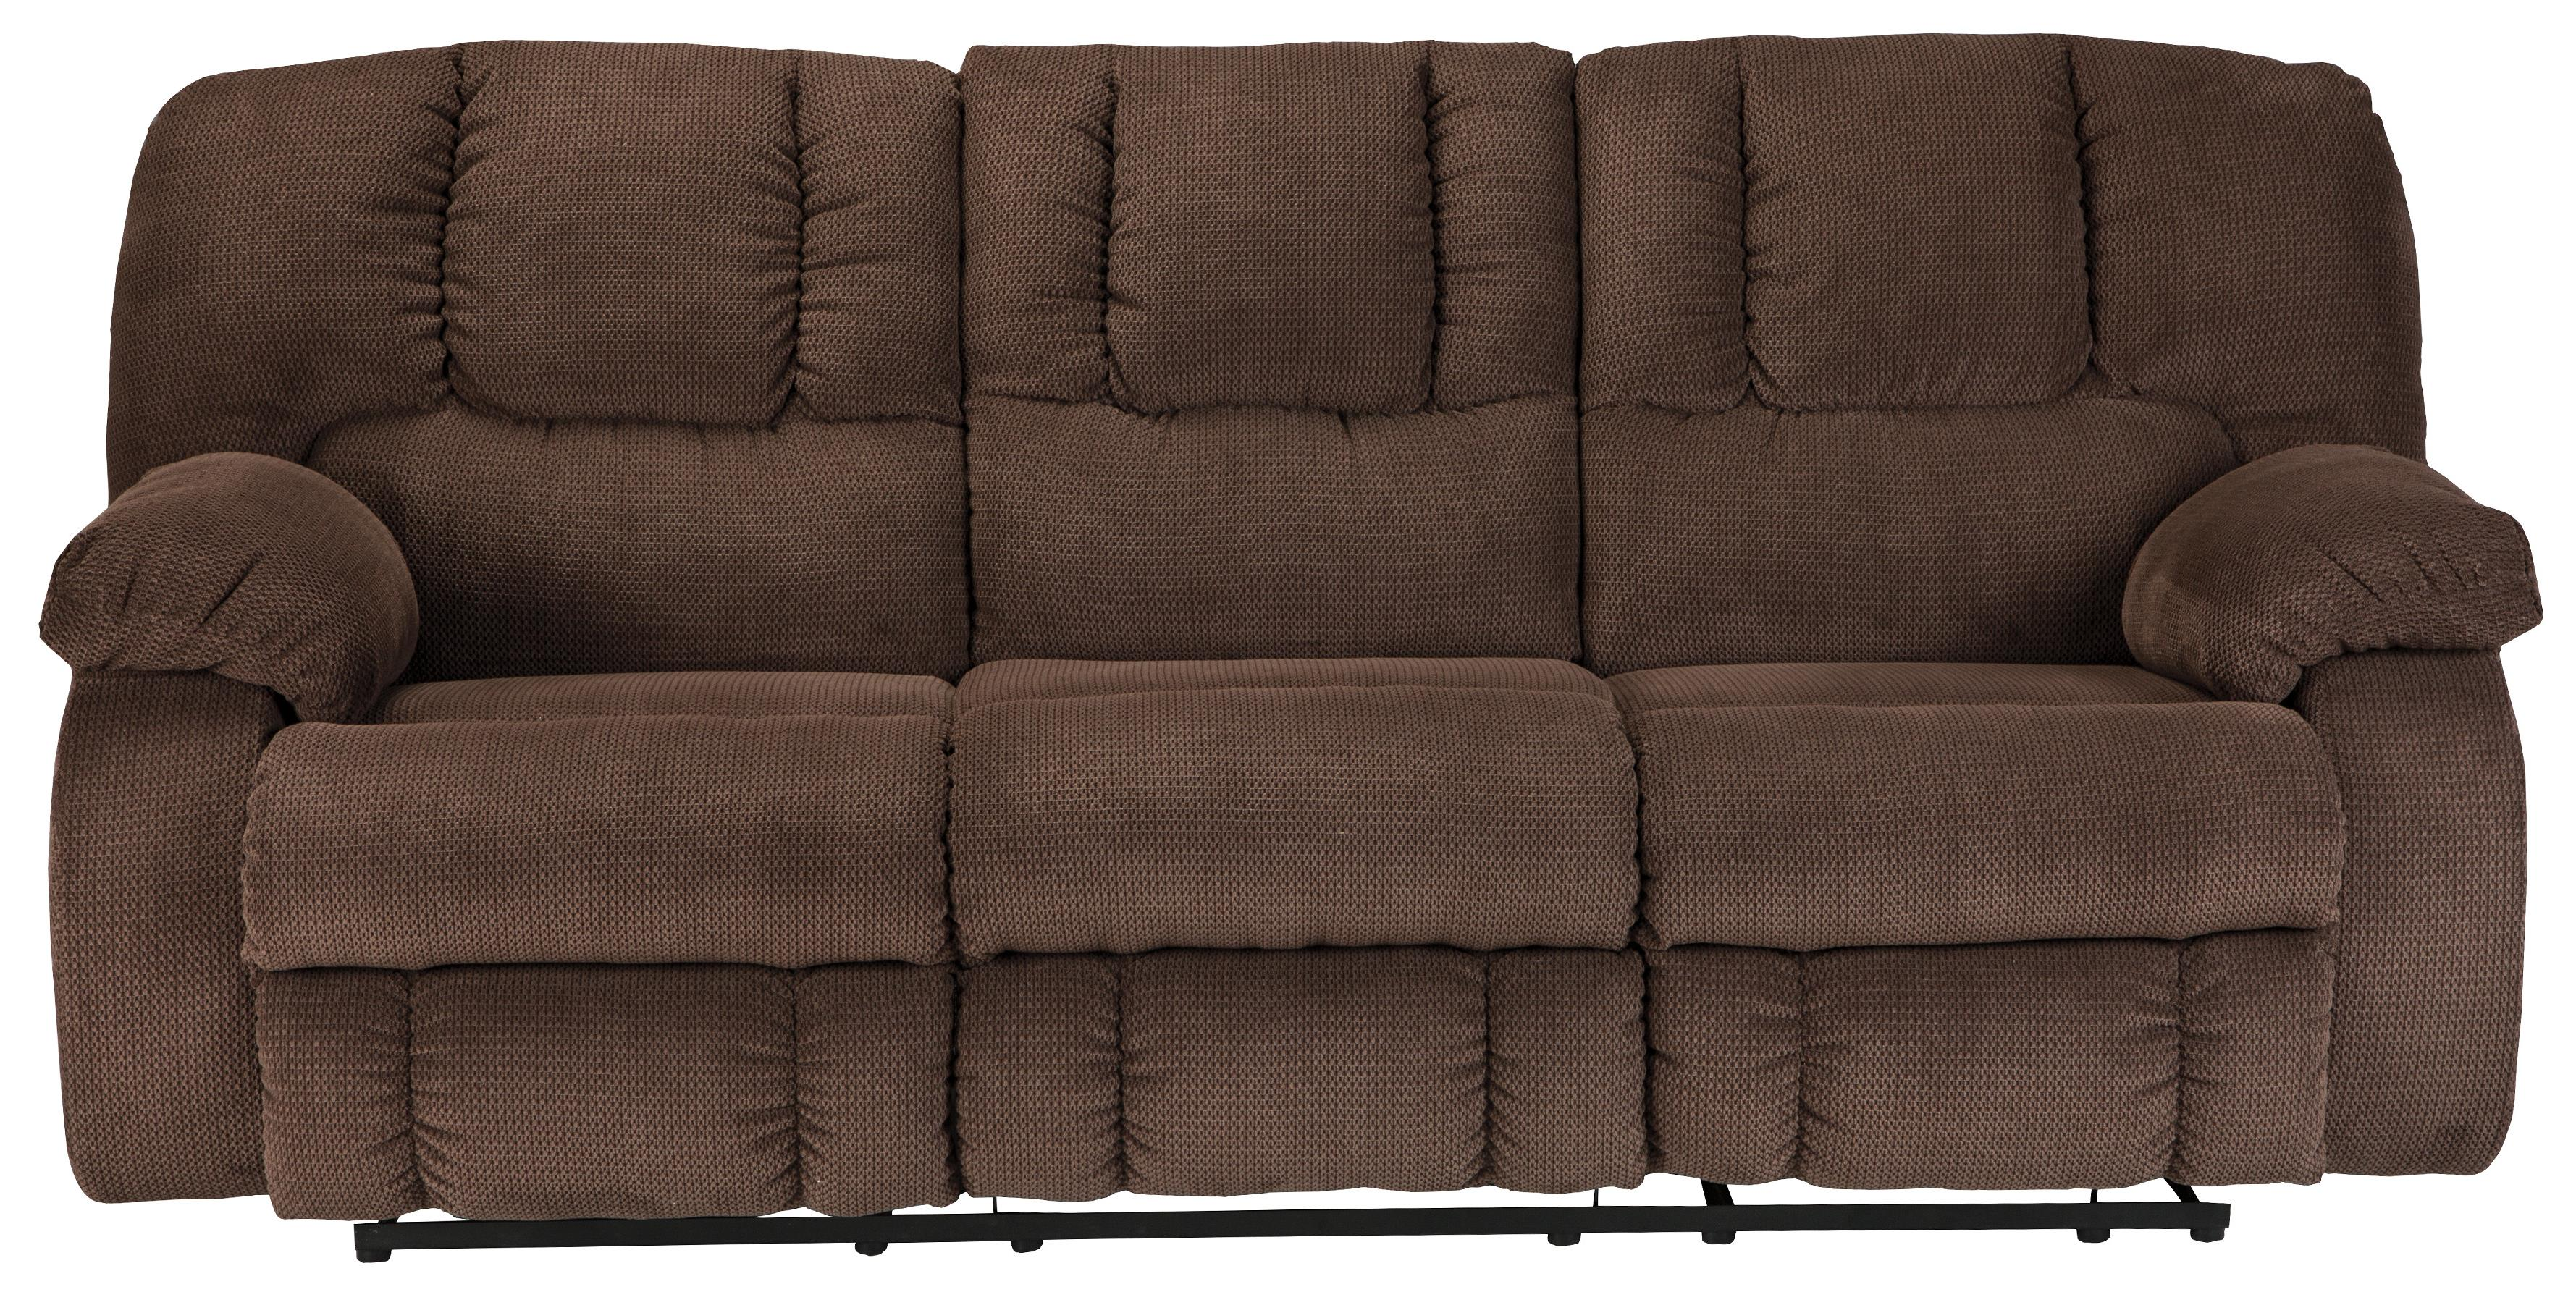 Benchcraft Roan Reclining Sofa - Item Number: 3860488